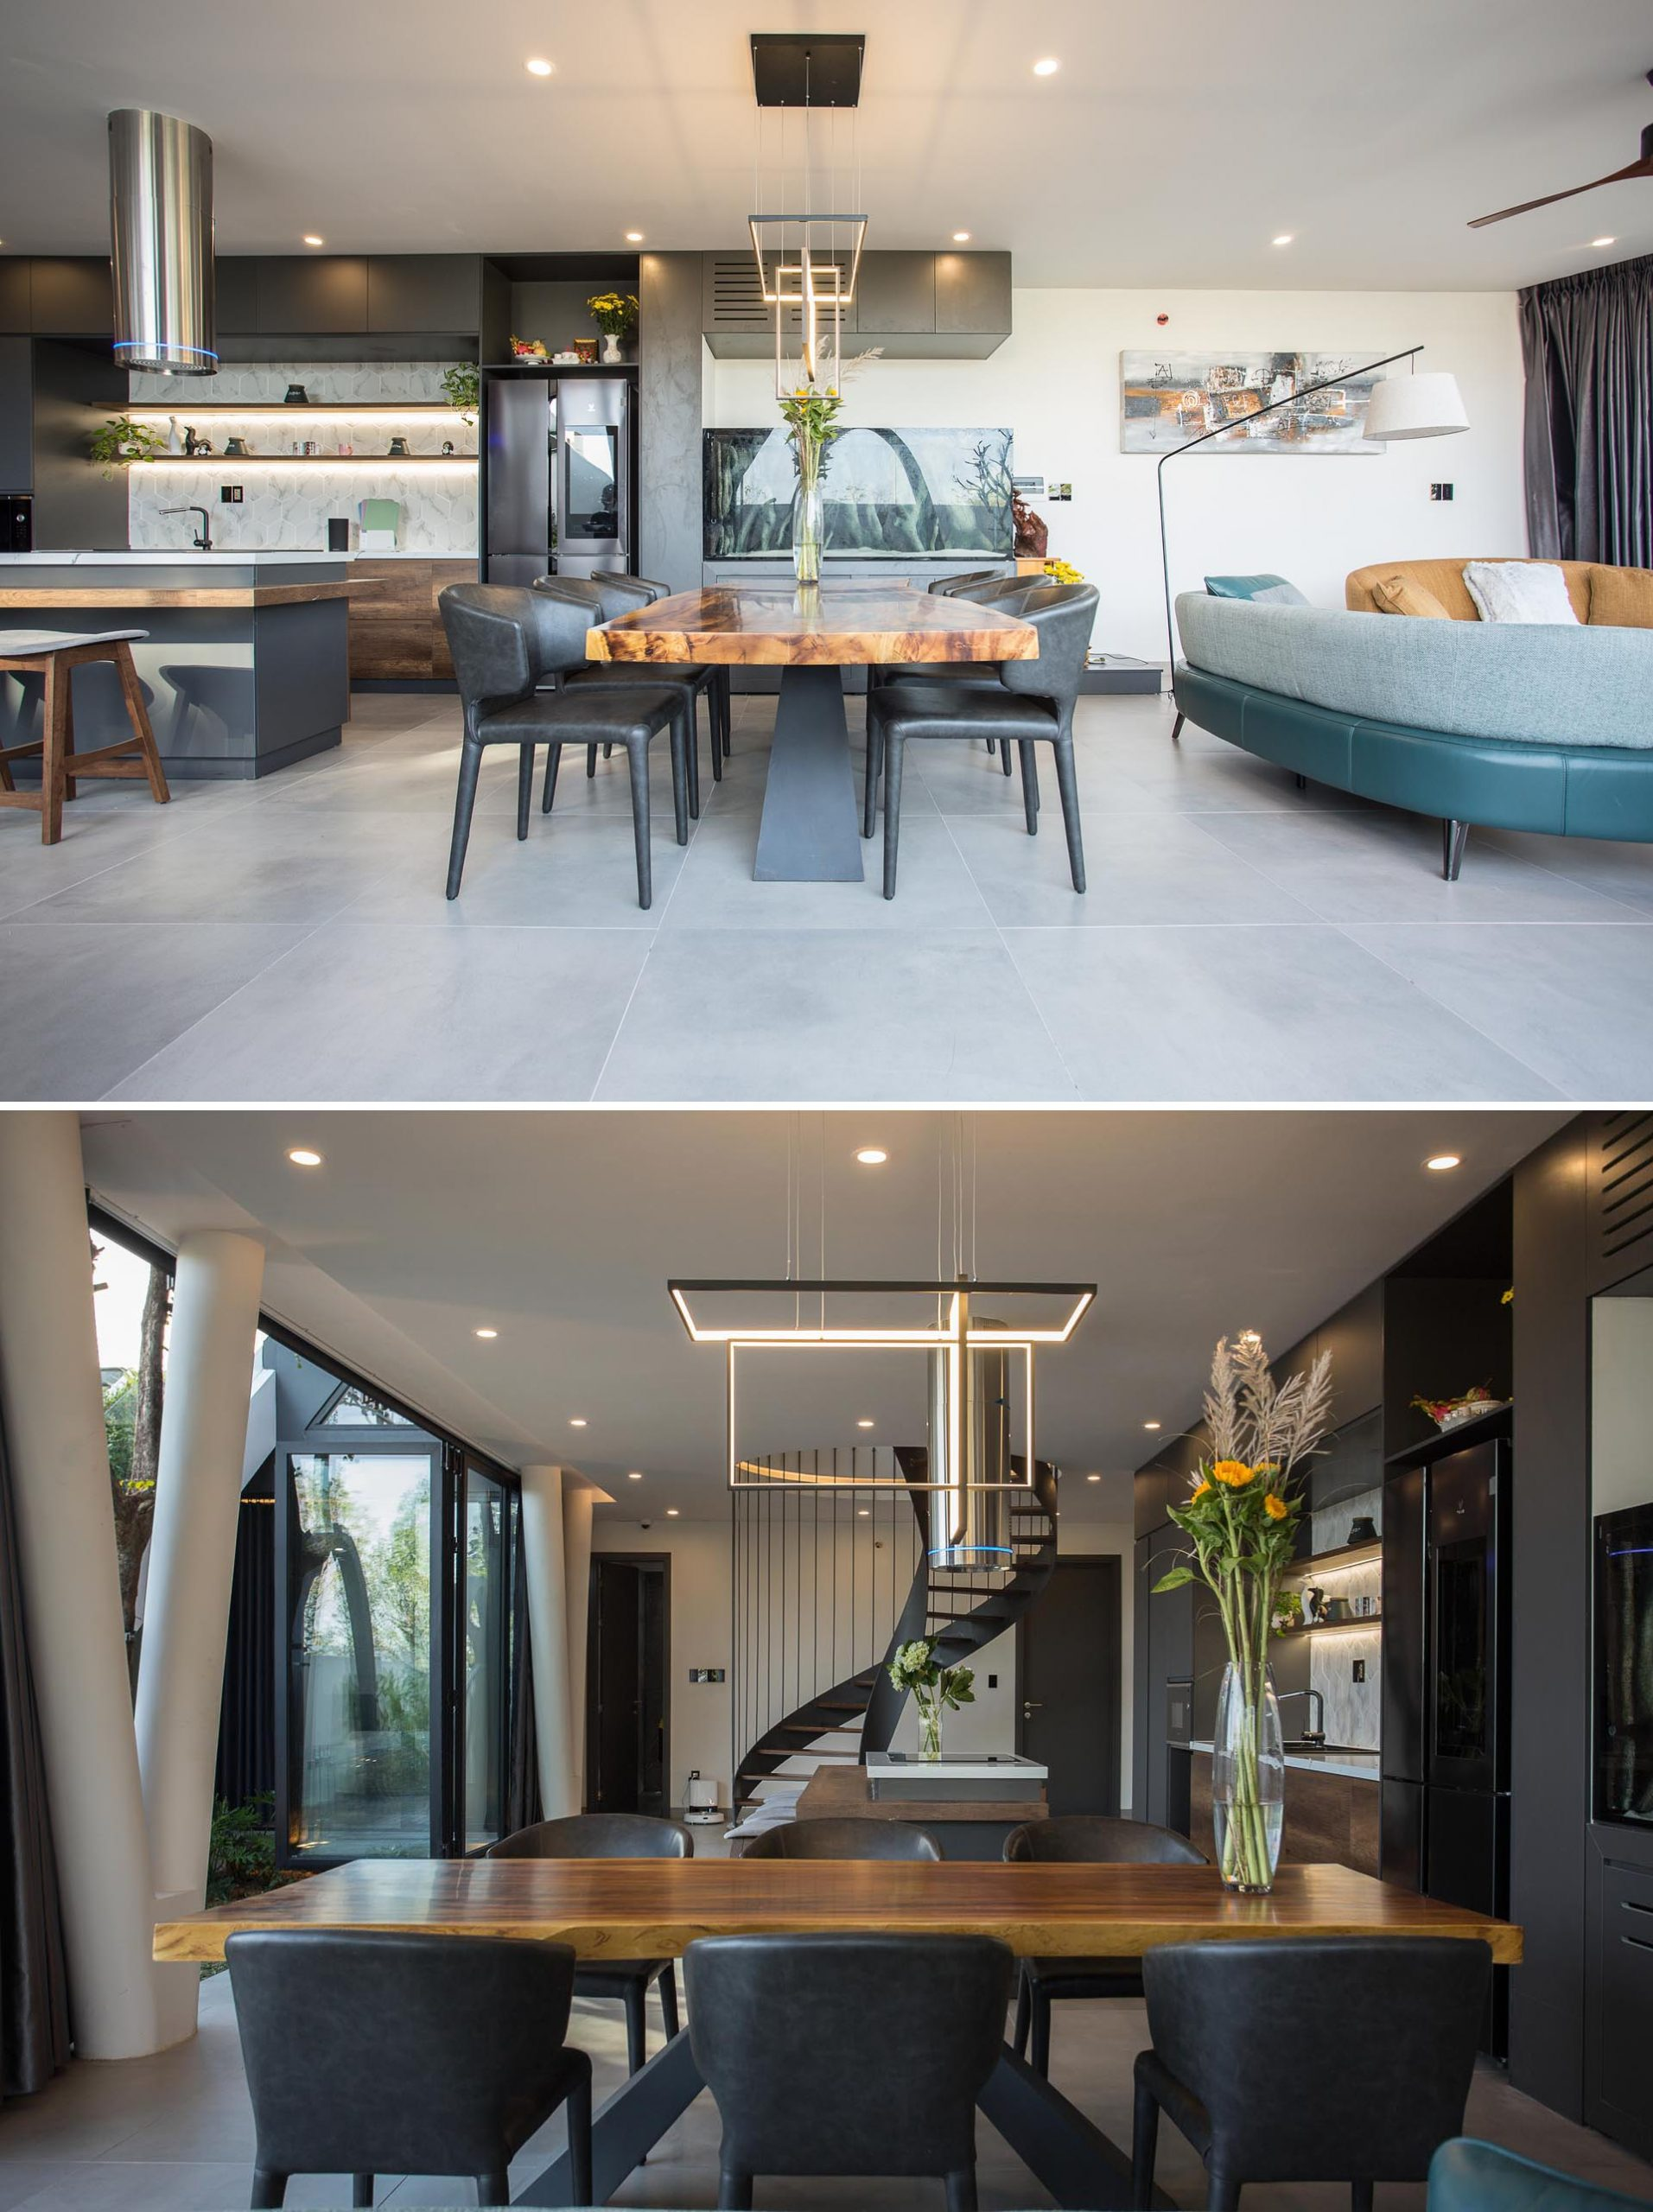 The dining room of this modern home is furnished with a wood top dining table and black chairs, and separates the living room and the kitchen.